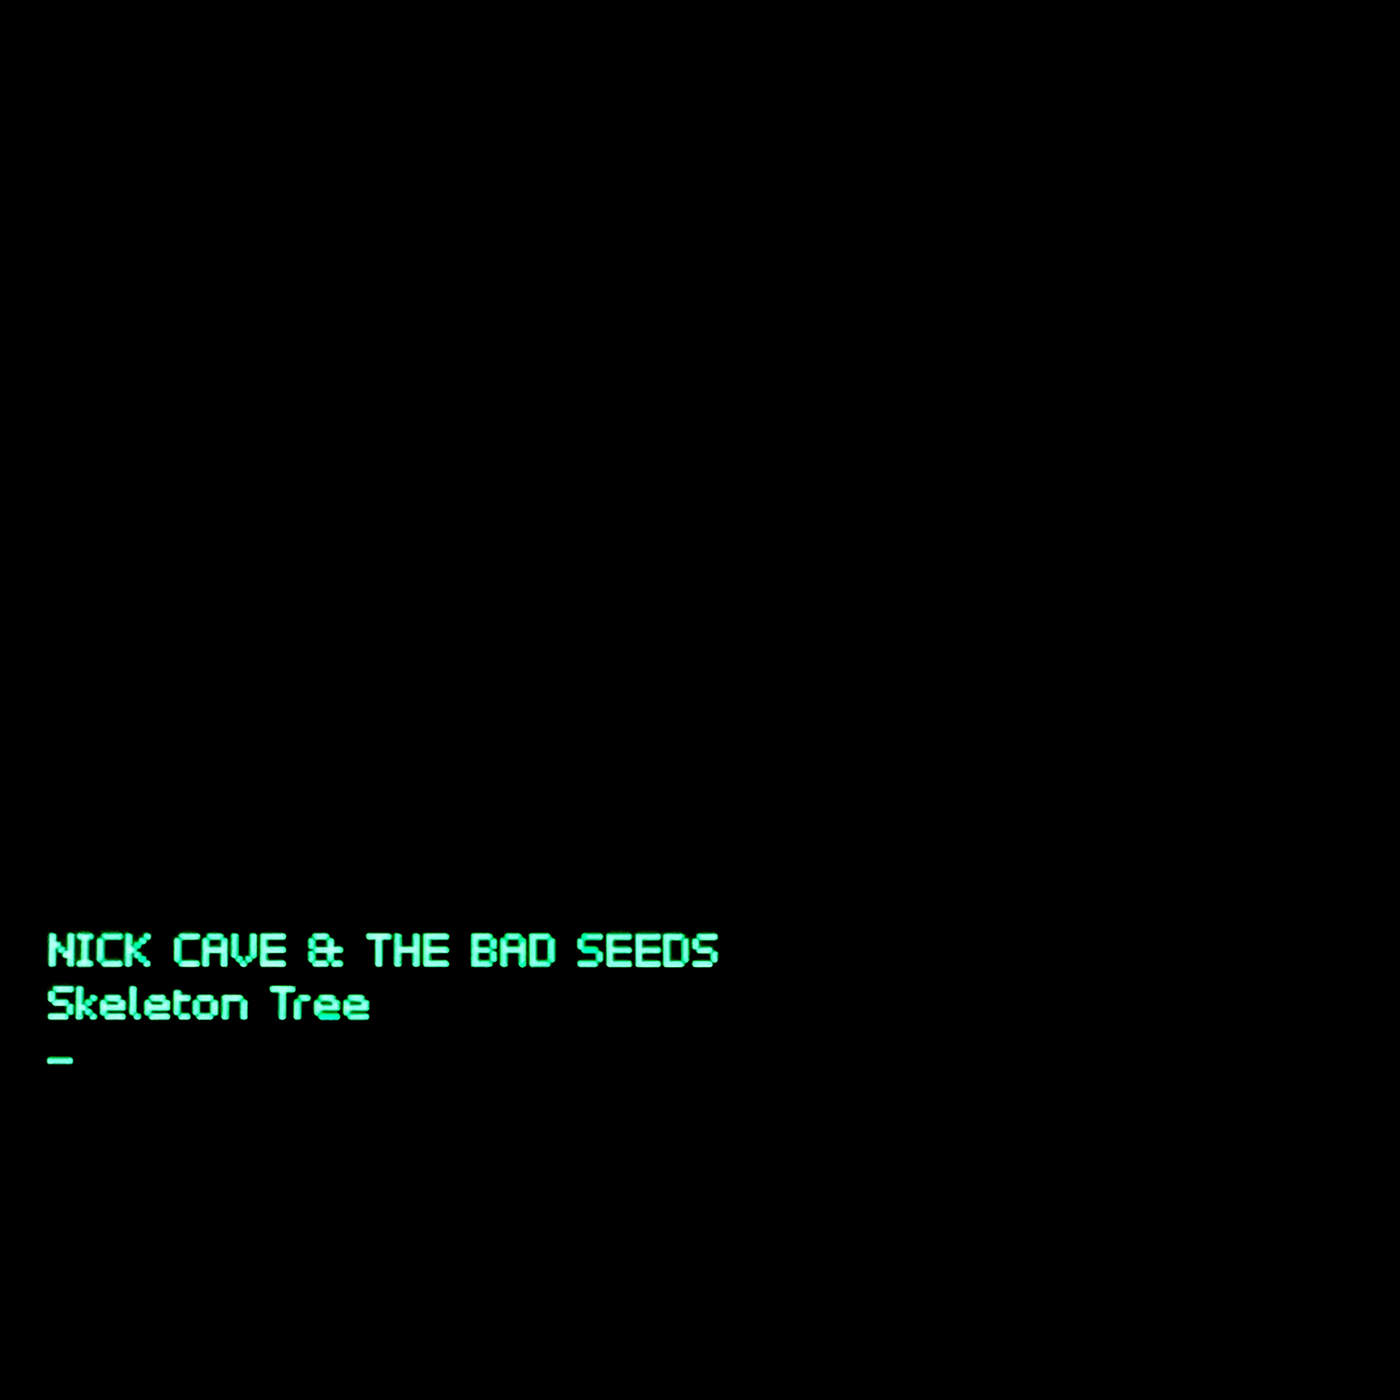 Skeleton Tree' Nick Cave and the Bad Seeds, album review by Joshua Gabert-Doyon.